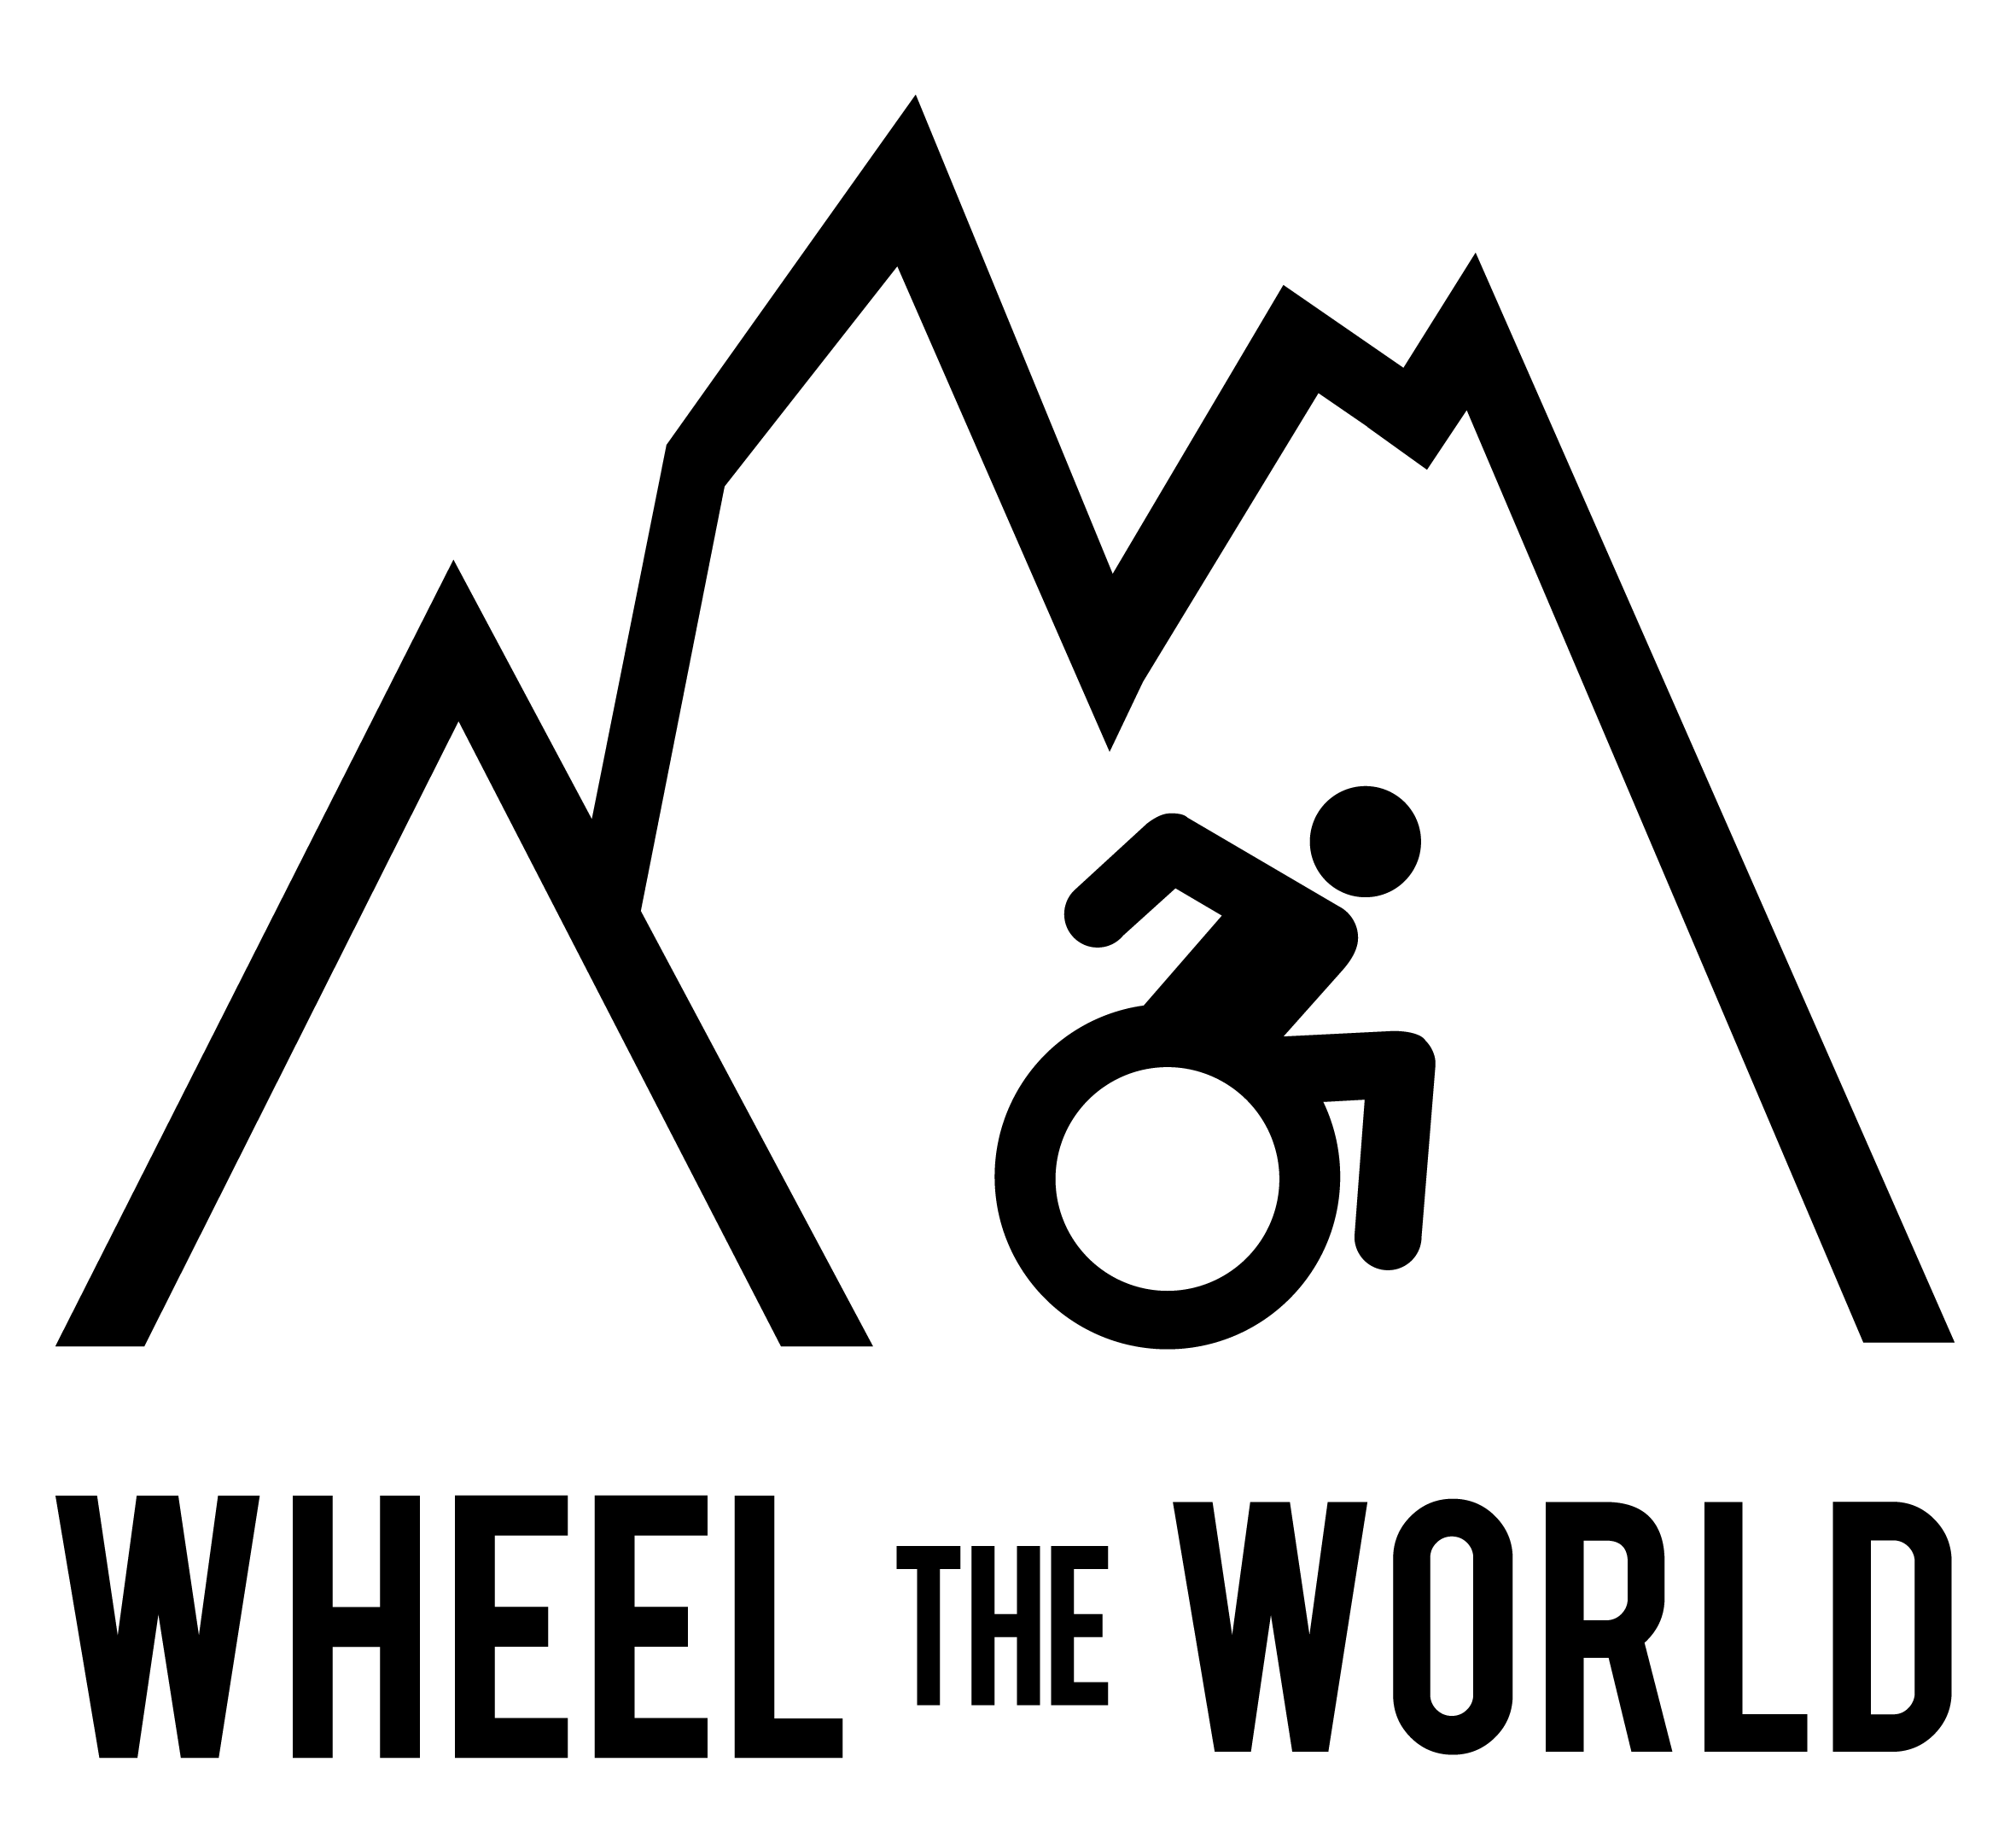 WHEEL THE WORLD